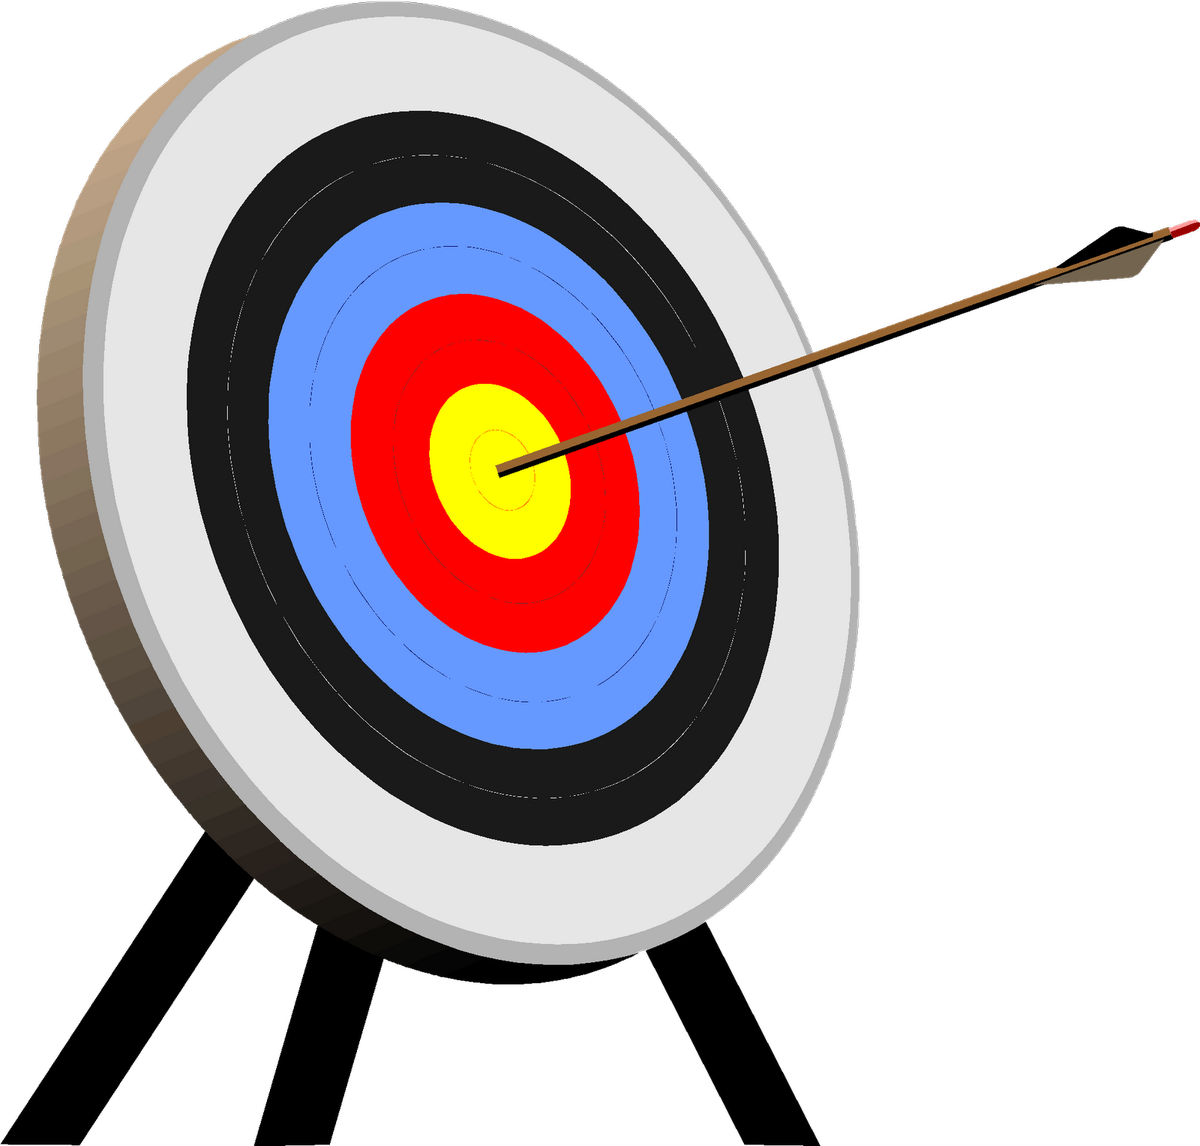 picture free stock Archery shooting arrow clip. Gun target clipart